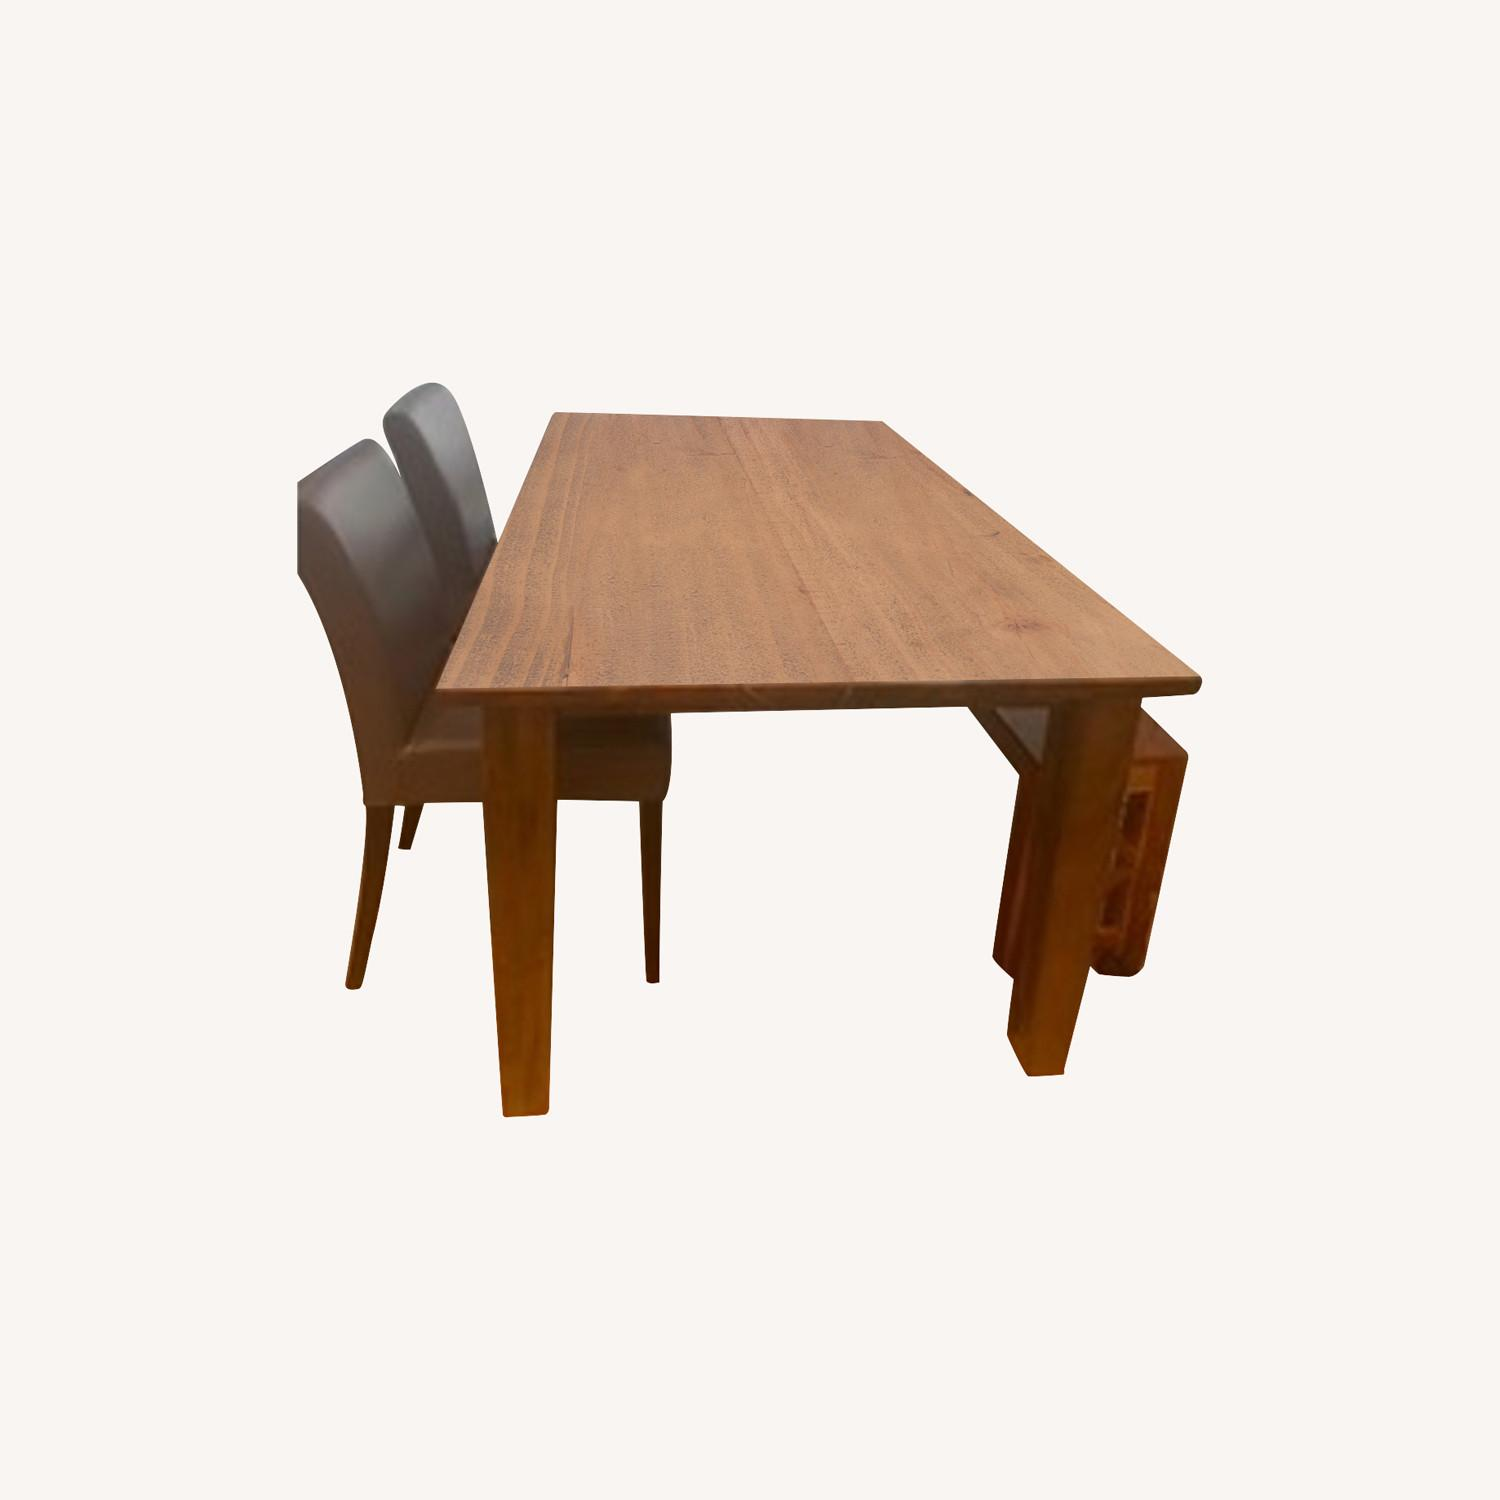 Crate & Barrel Wood Dining Table Set - image-0